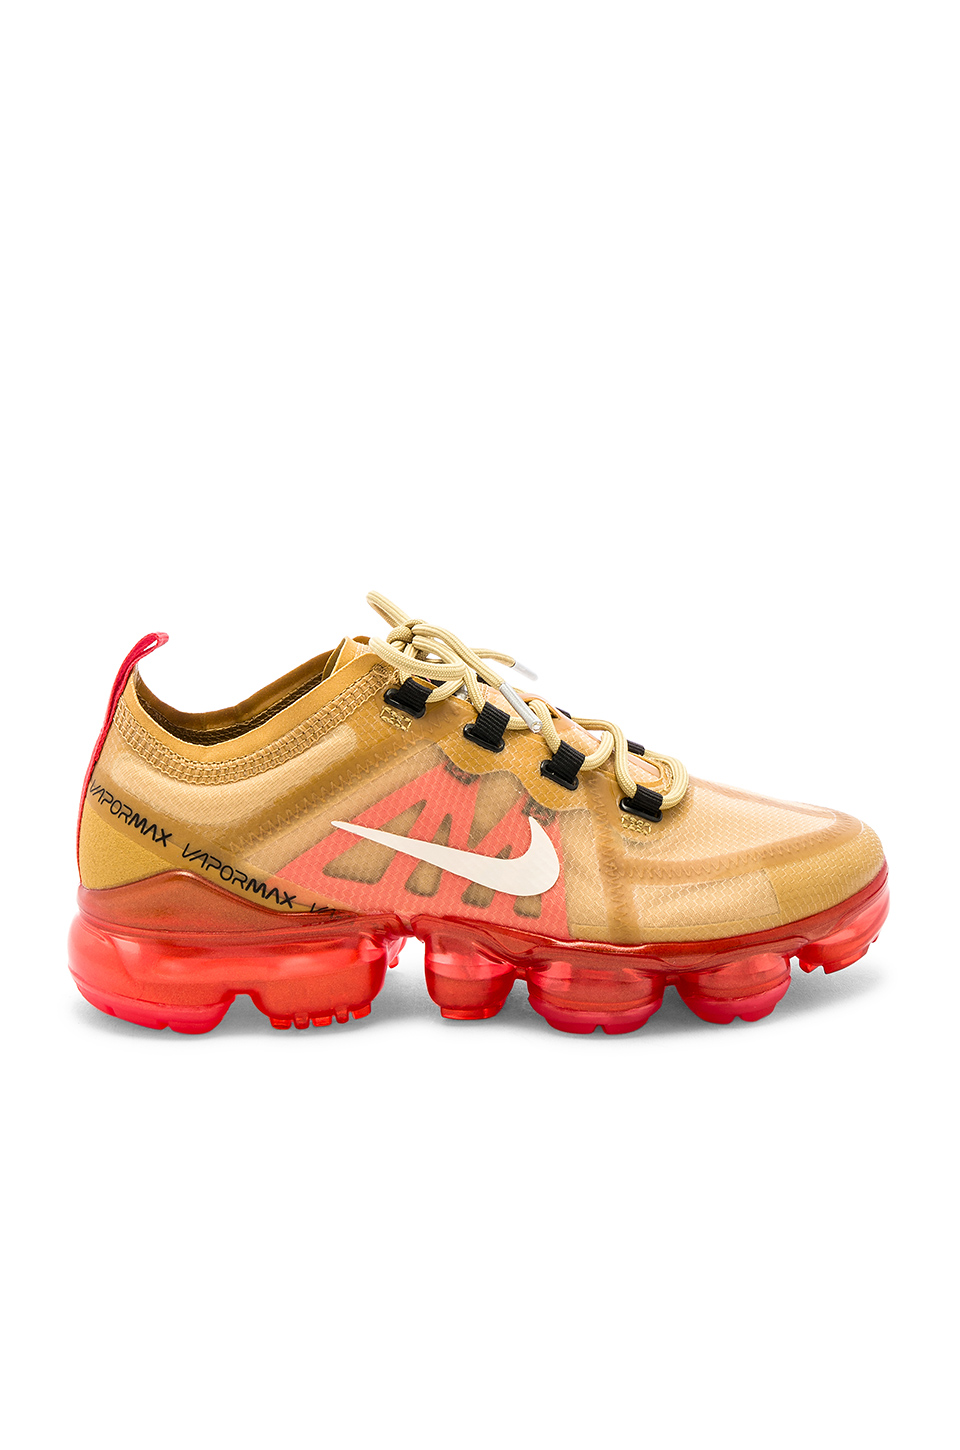 4b48188bc Nike Air Vapormax 2019 Ripstop And Mesh Sneakers In Gold | ModeSens